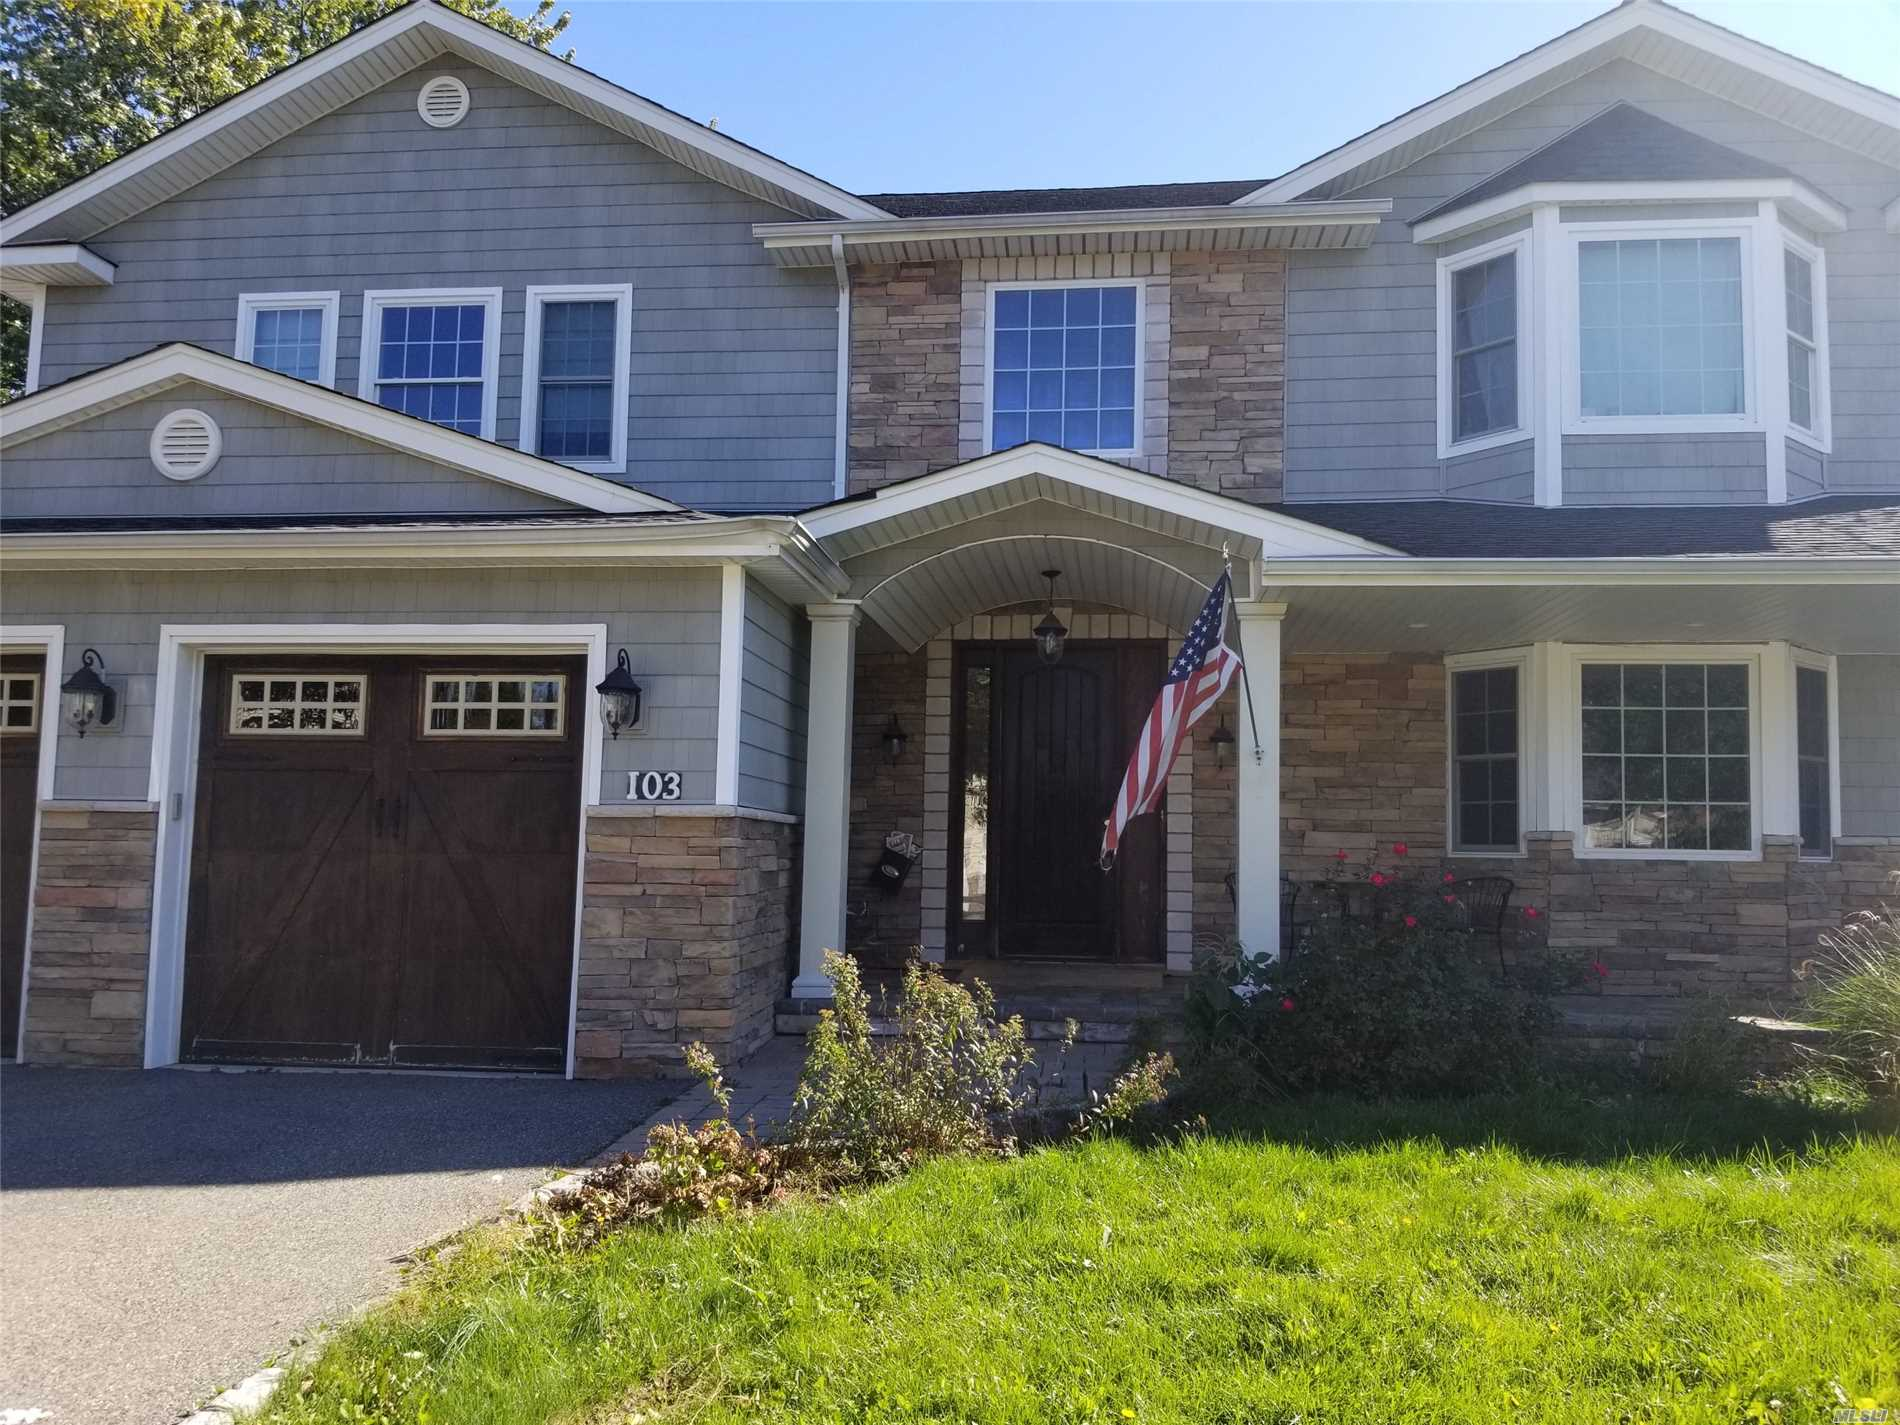 Beautiful Colonial With 4 Bedrooms And 3 Baths. Large Master Suite With Fireplace, Walk In Closets And Balcony. Hardwood Floors Throughout, Formal Dining Room And Large Kitchen With Tons Of Counter Space. Close To Shopping, Transportation And Major Roadways